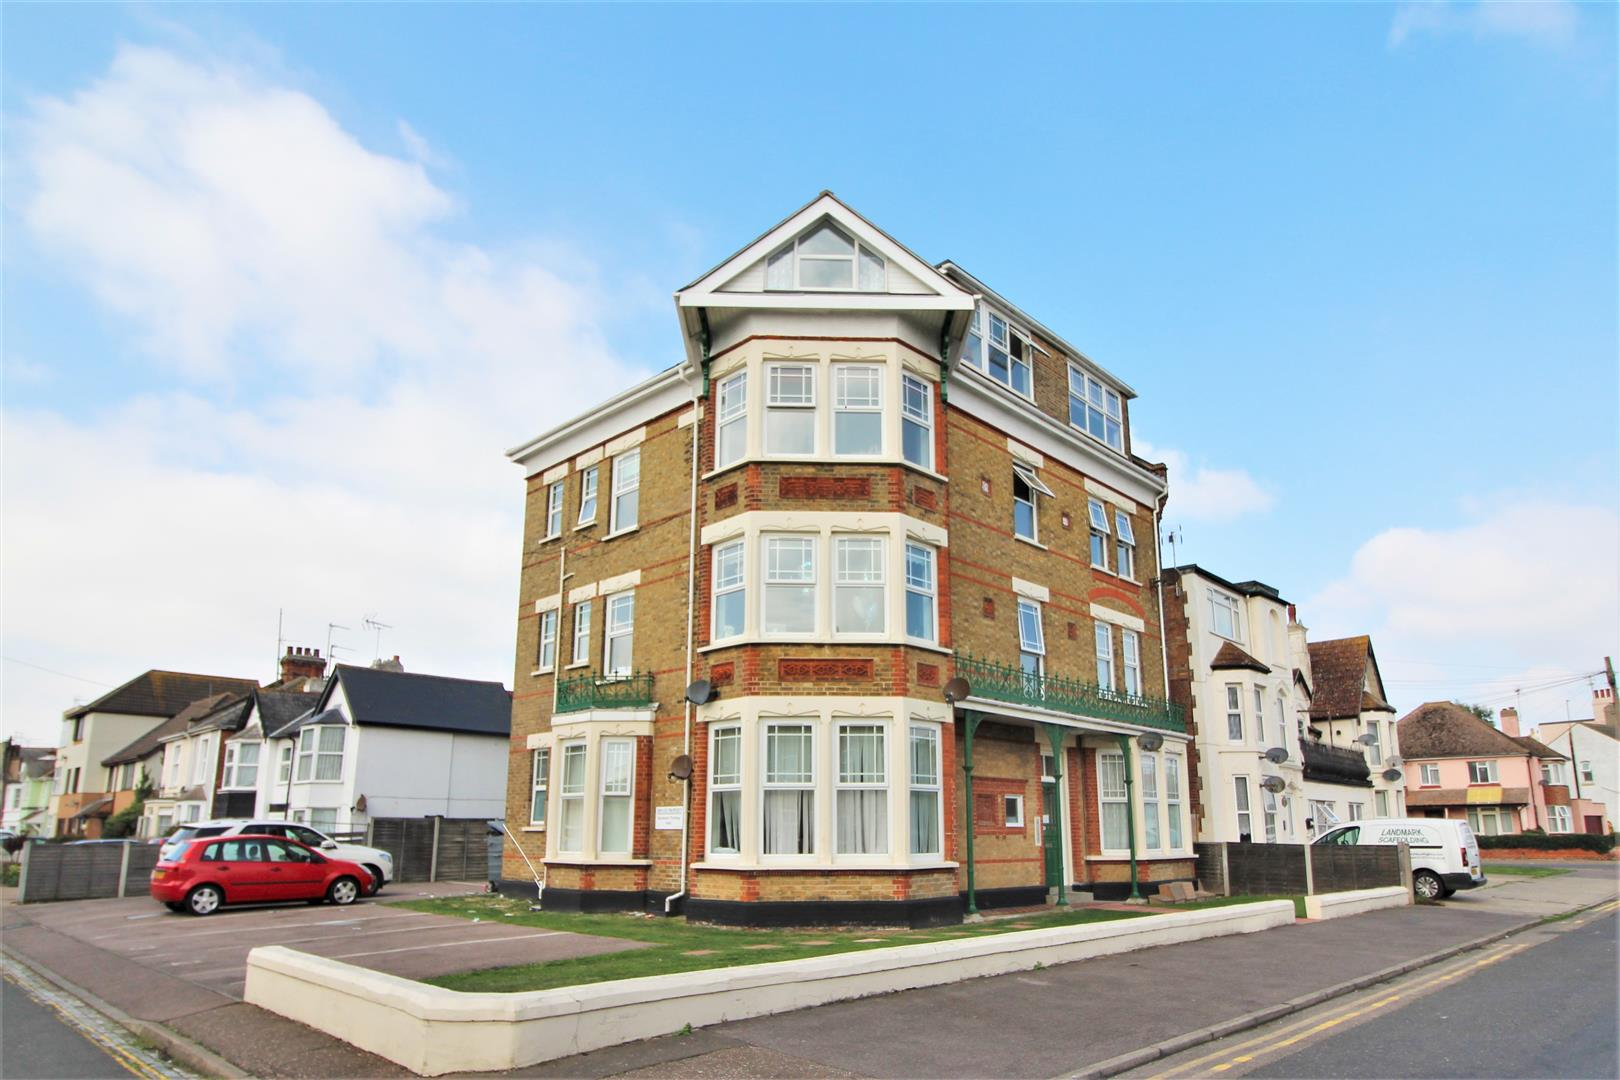 Harold Road, Clacton-On-Sea, Essex, CO15 6AE